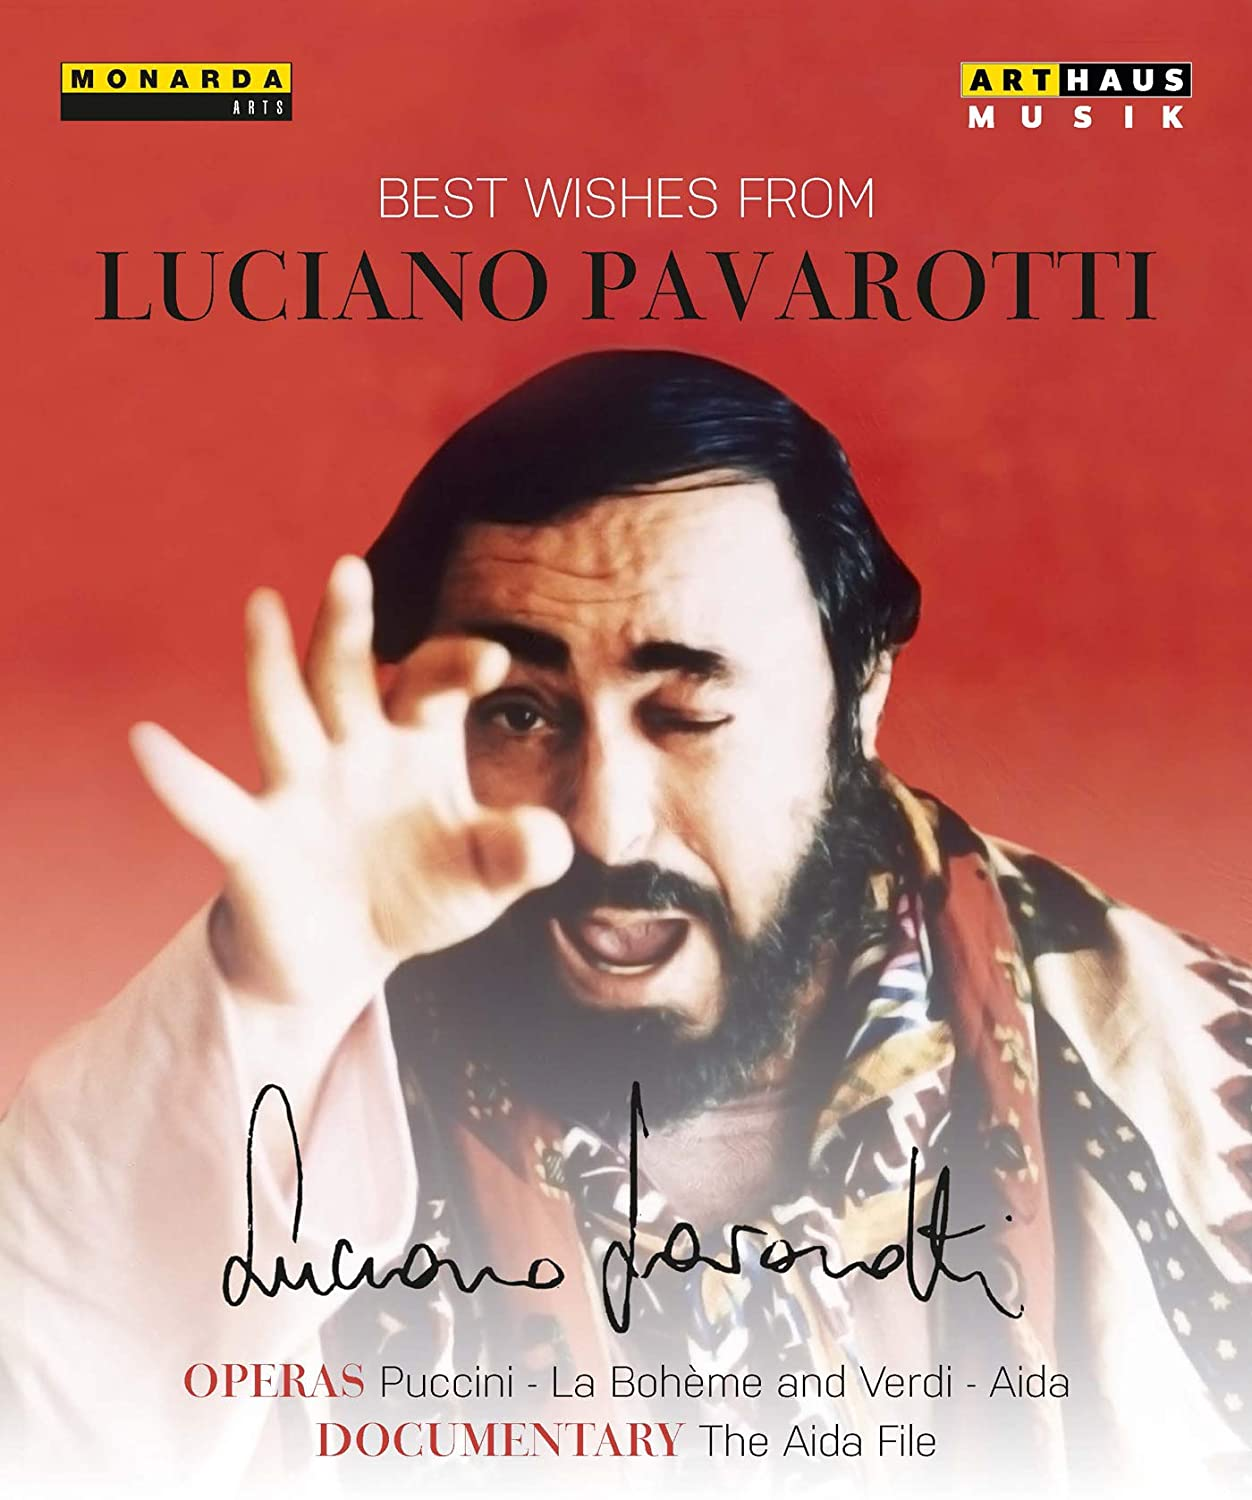 Verdi Giuseppe - Best Max 87% OFF New products, world's highest quality popular! Wishes From Blu-ray Luciano Pavarotti